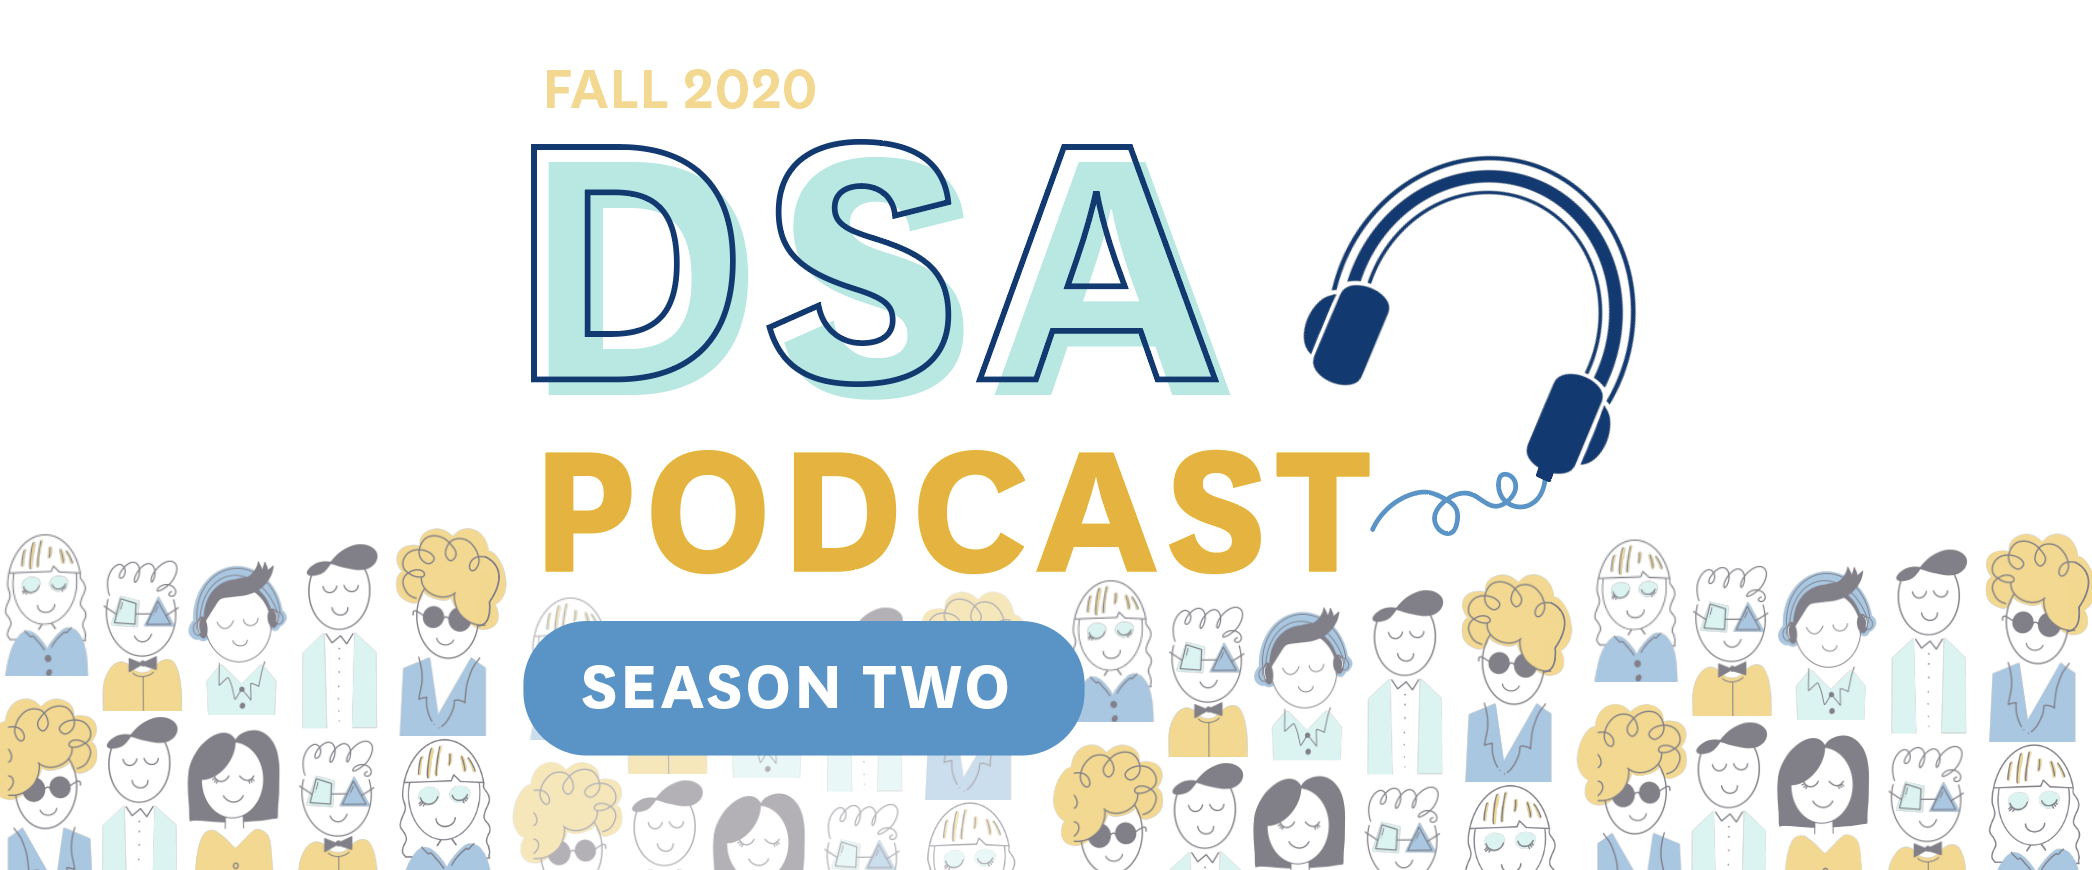 DSA Podcast Season 2